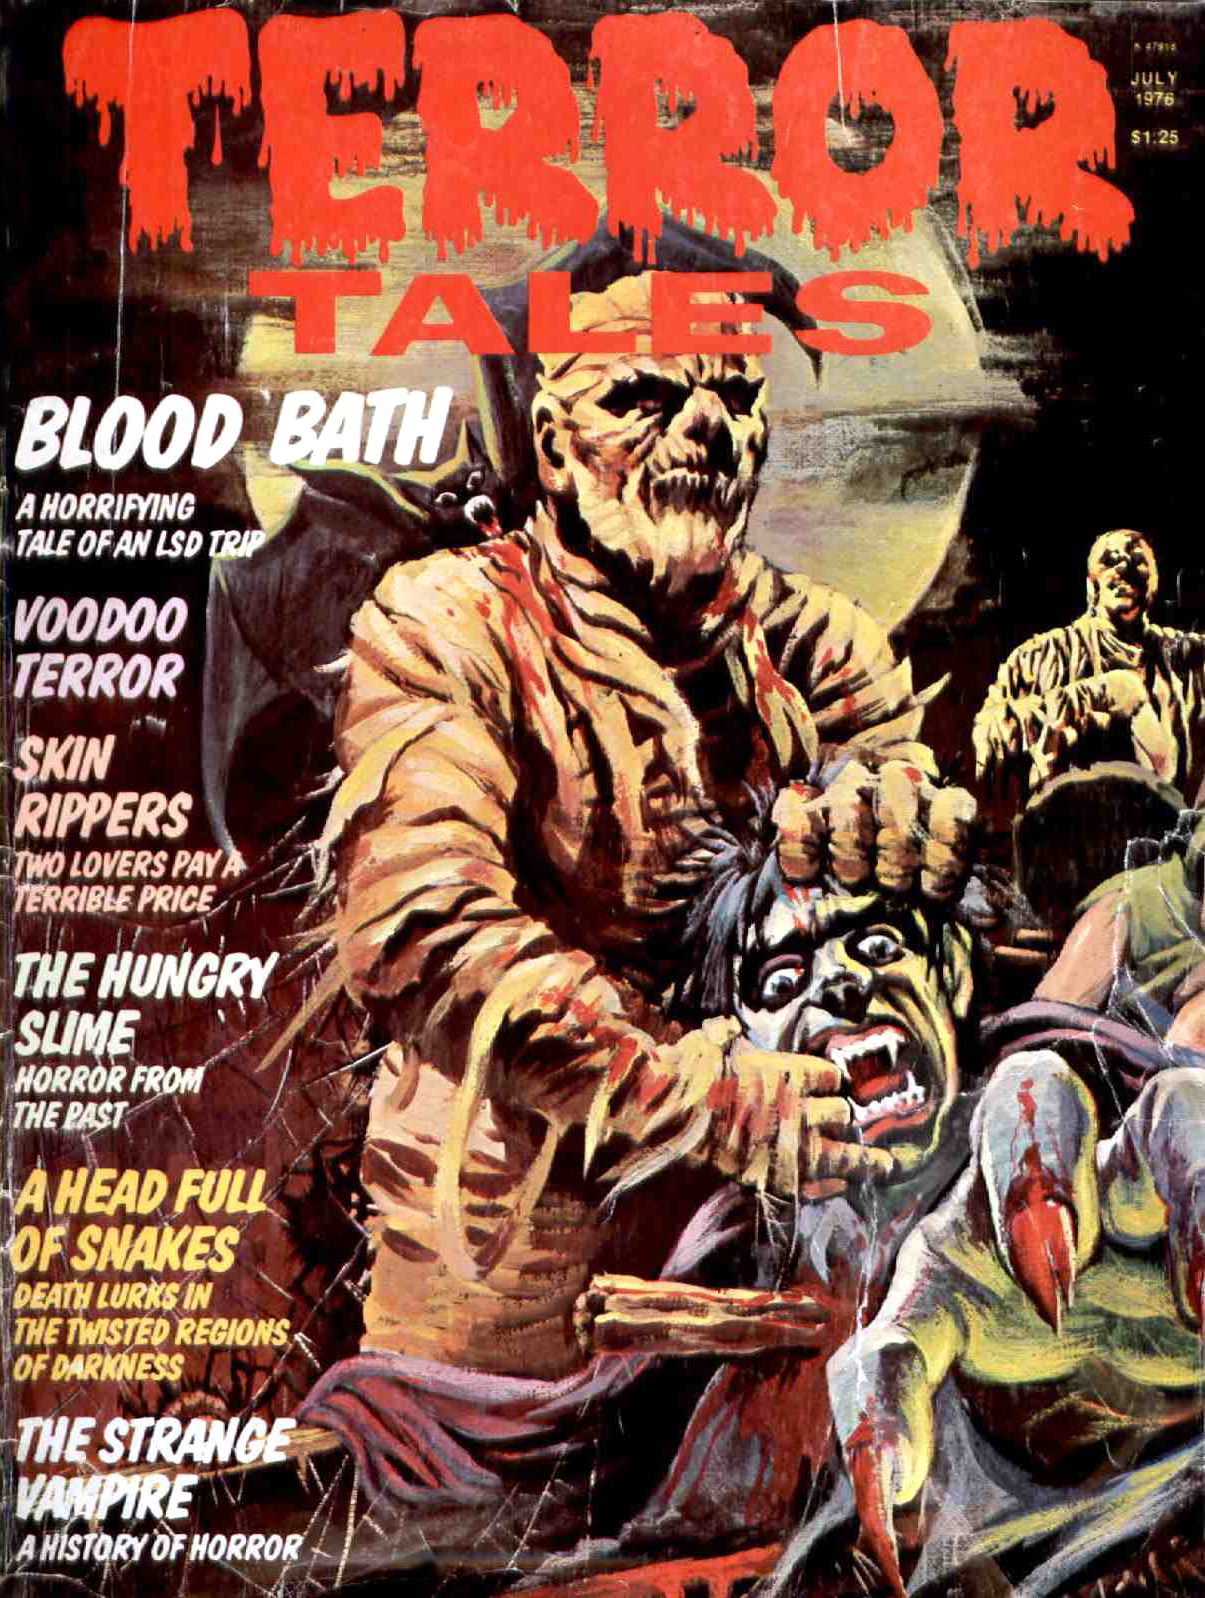 Terror Tales Vol. 07 #3 (Eerie Publications, 1976)